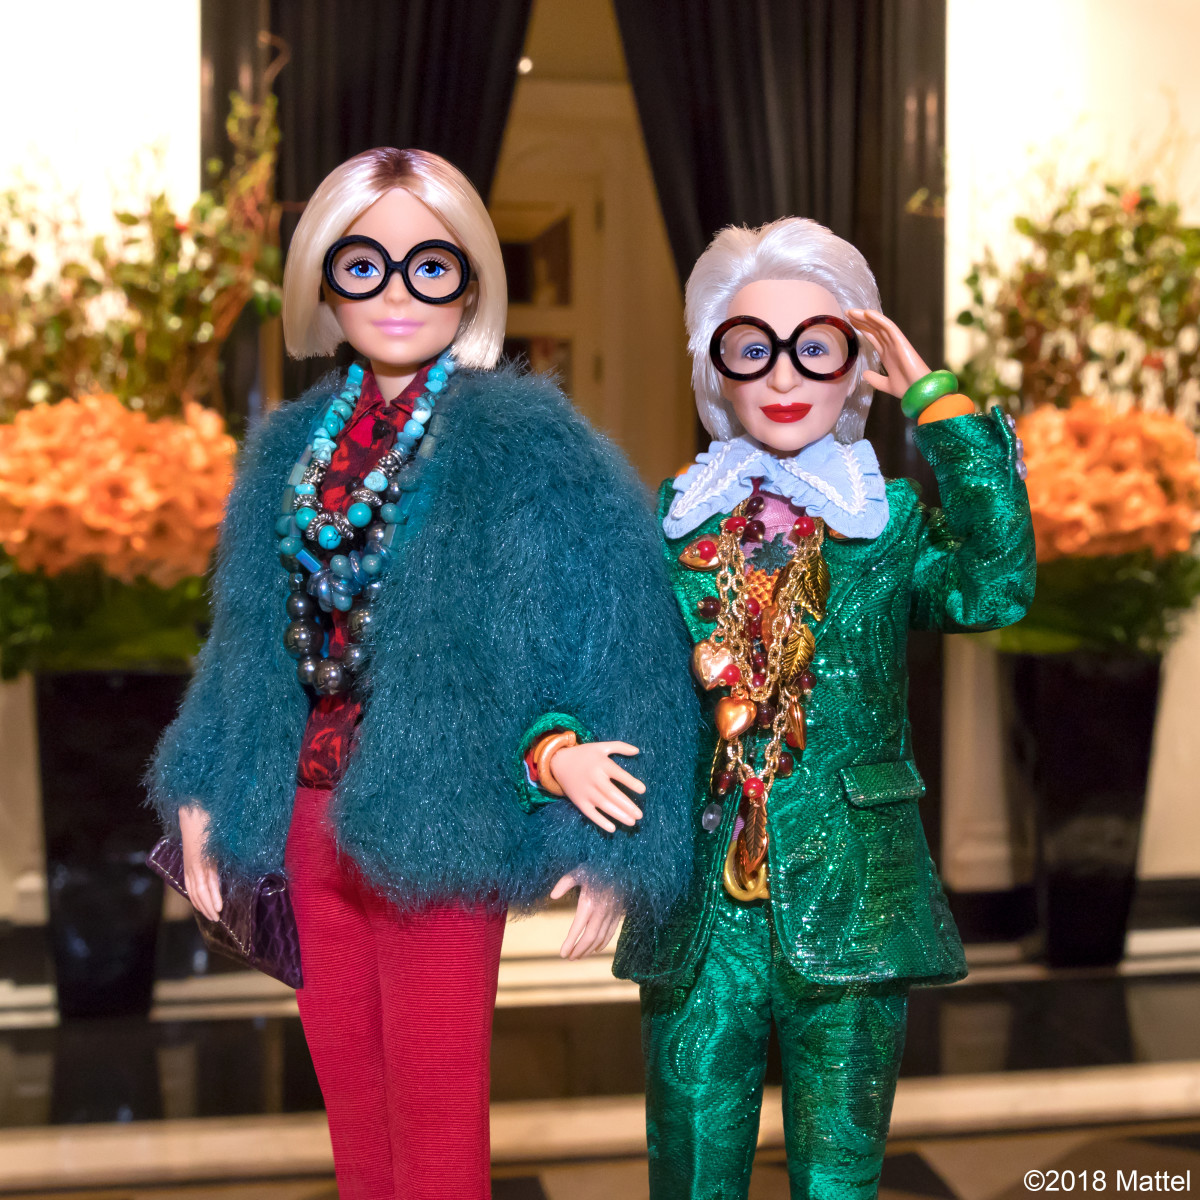 Barbie and Iris Apfel's Barbie at the Carlyle Hotel. Photo: Courtesy of Mattel